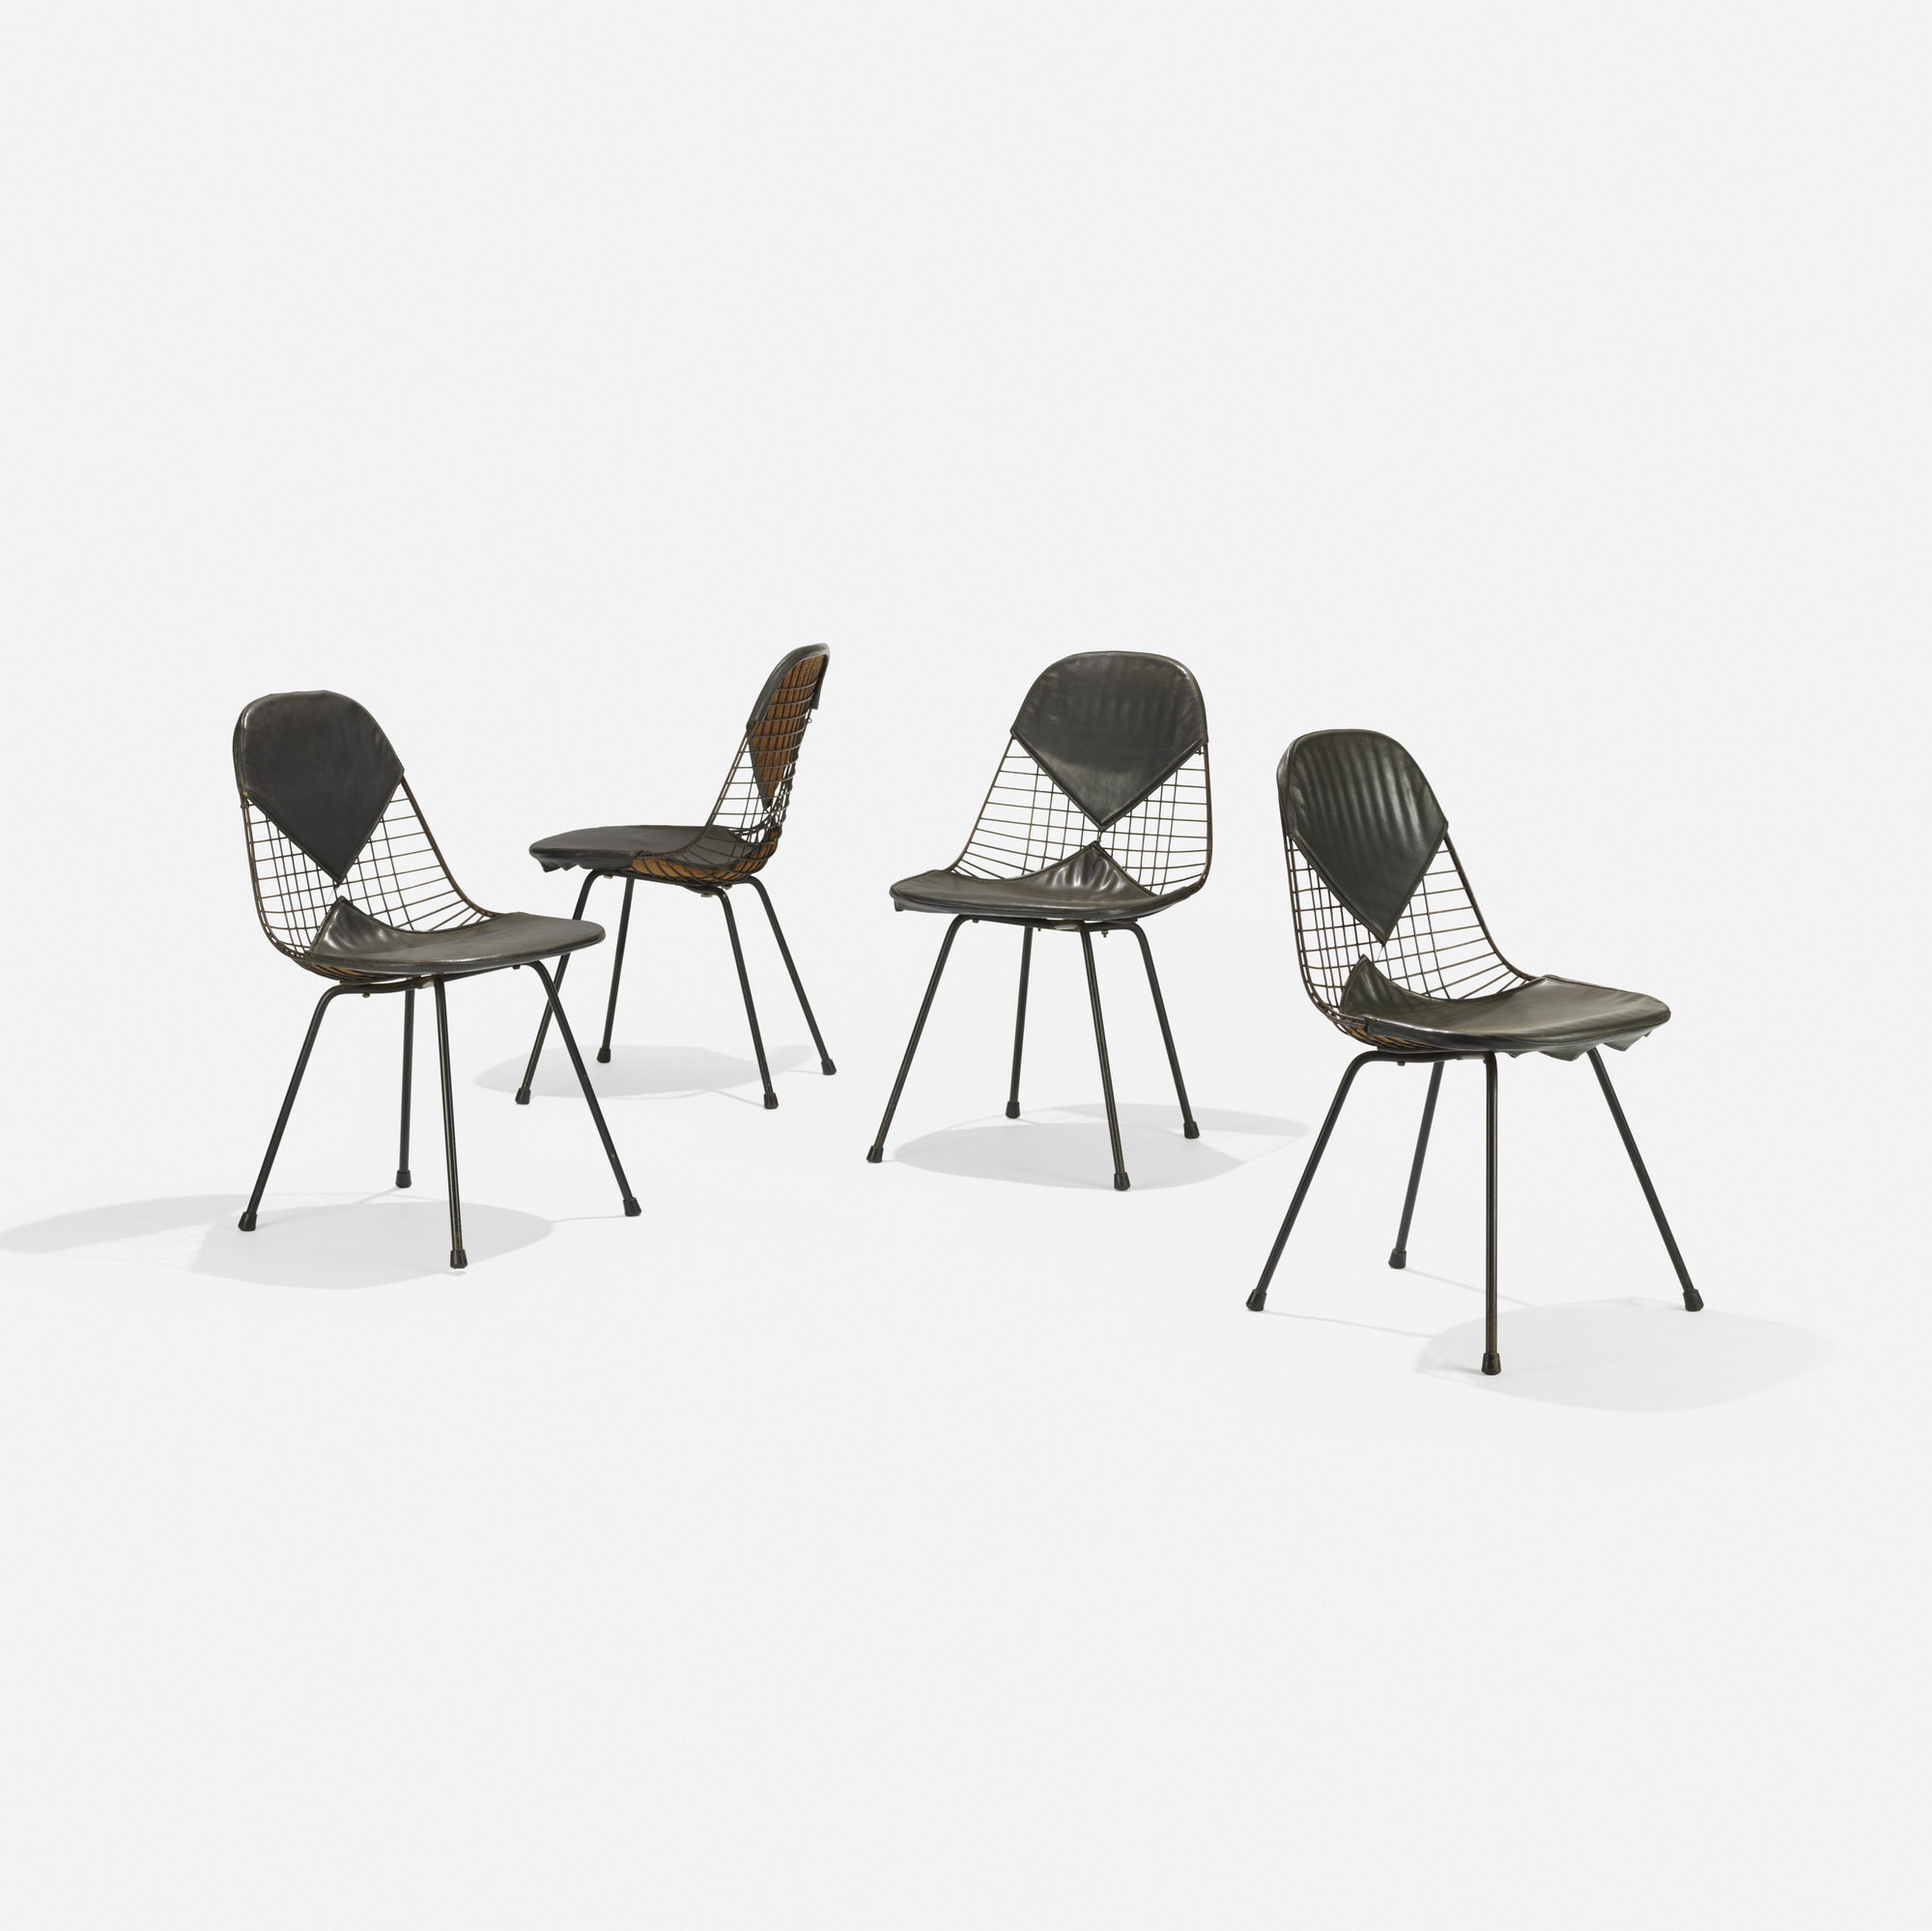 180: Charles and Ray Eames / early DKRs, set of four (2 of 4)